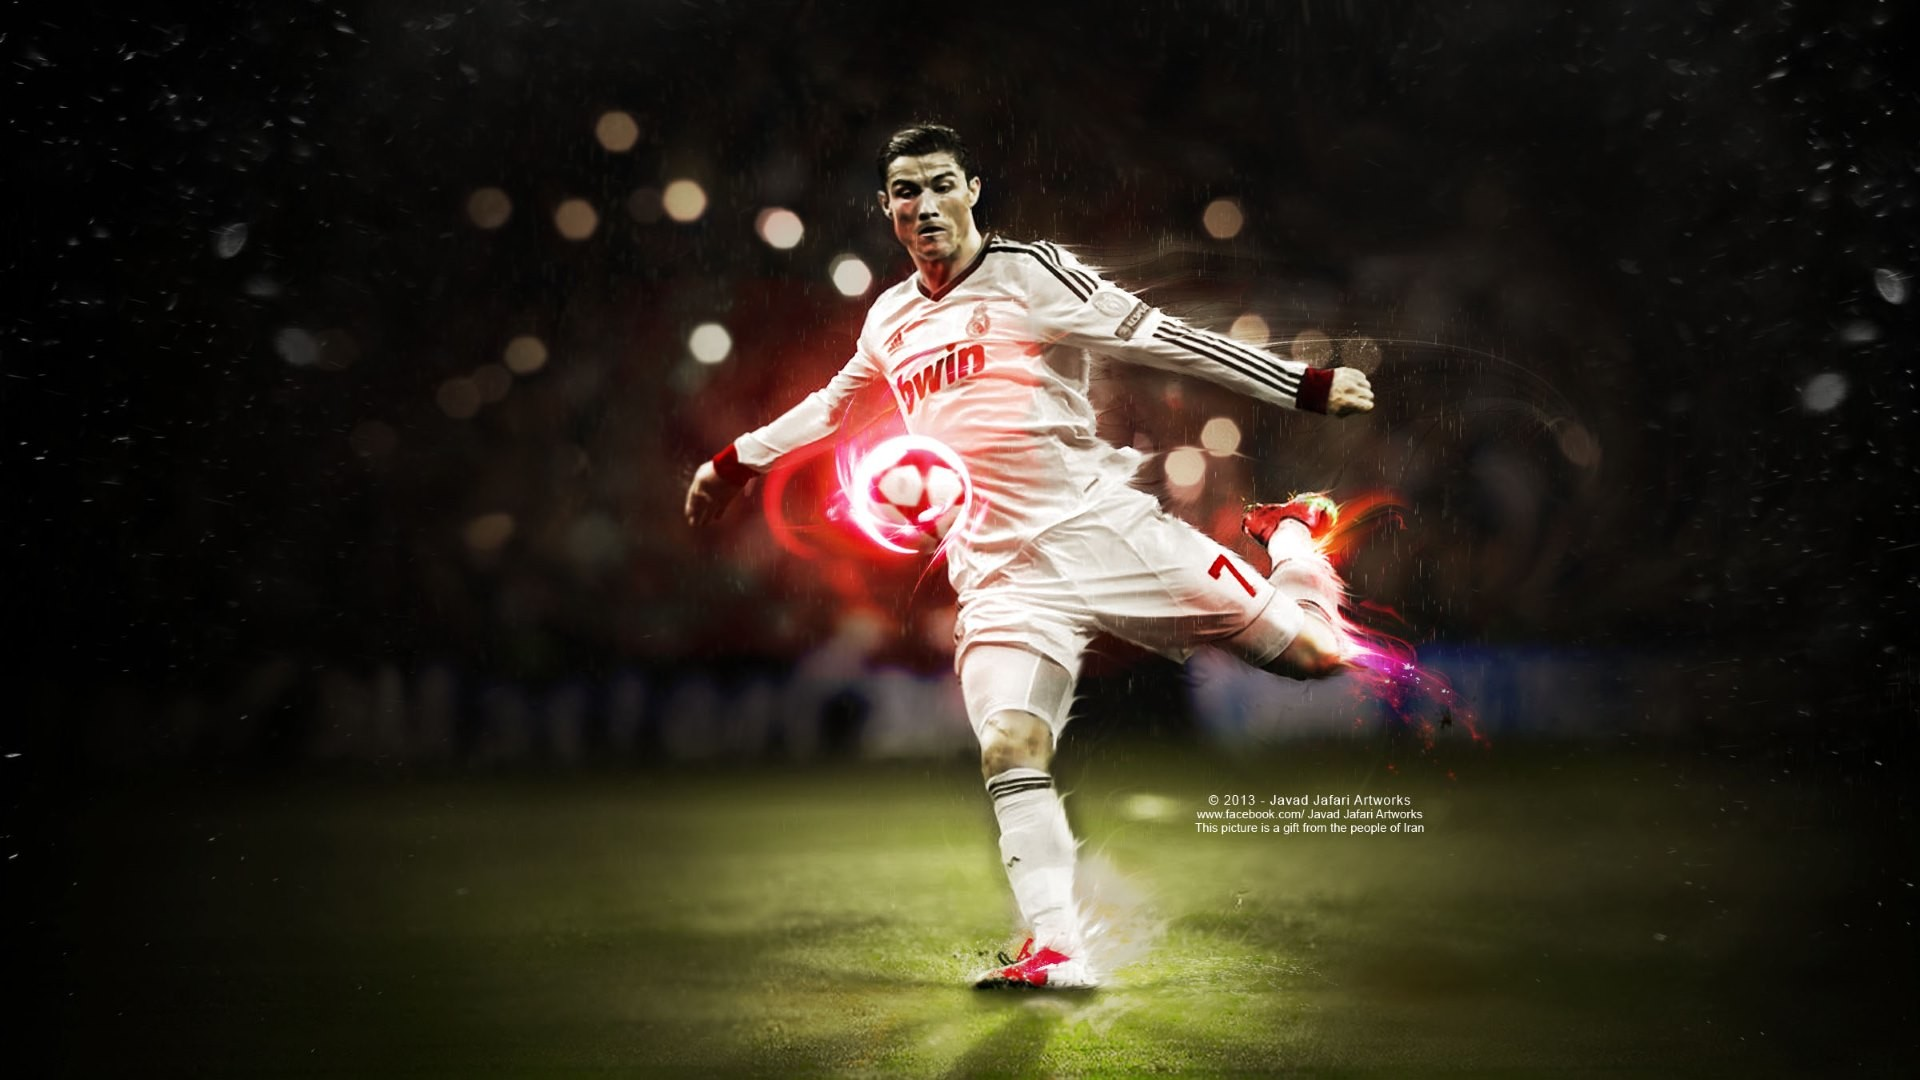 1920x1080 Ronaldo A Football WallpaperSports